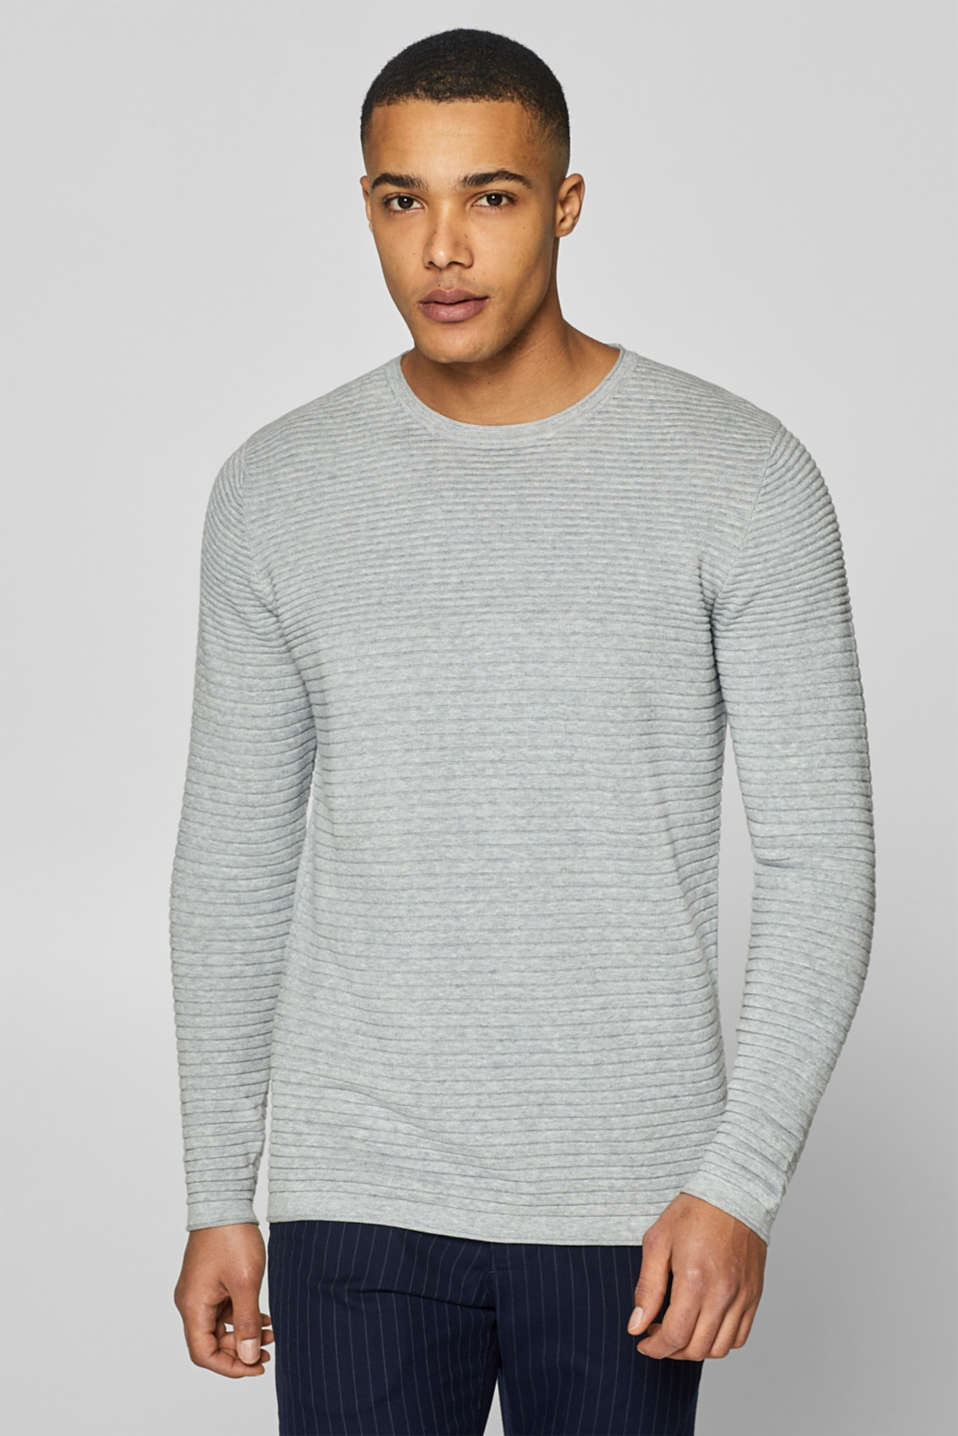 edc - Jumper with textured stripes, 100% cotton